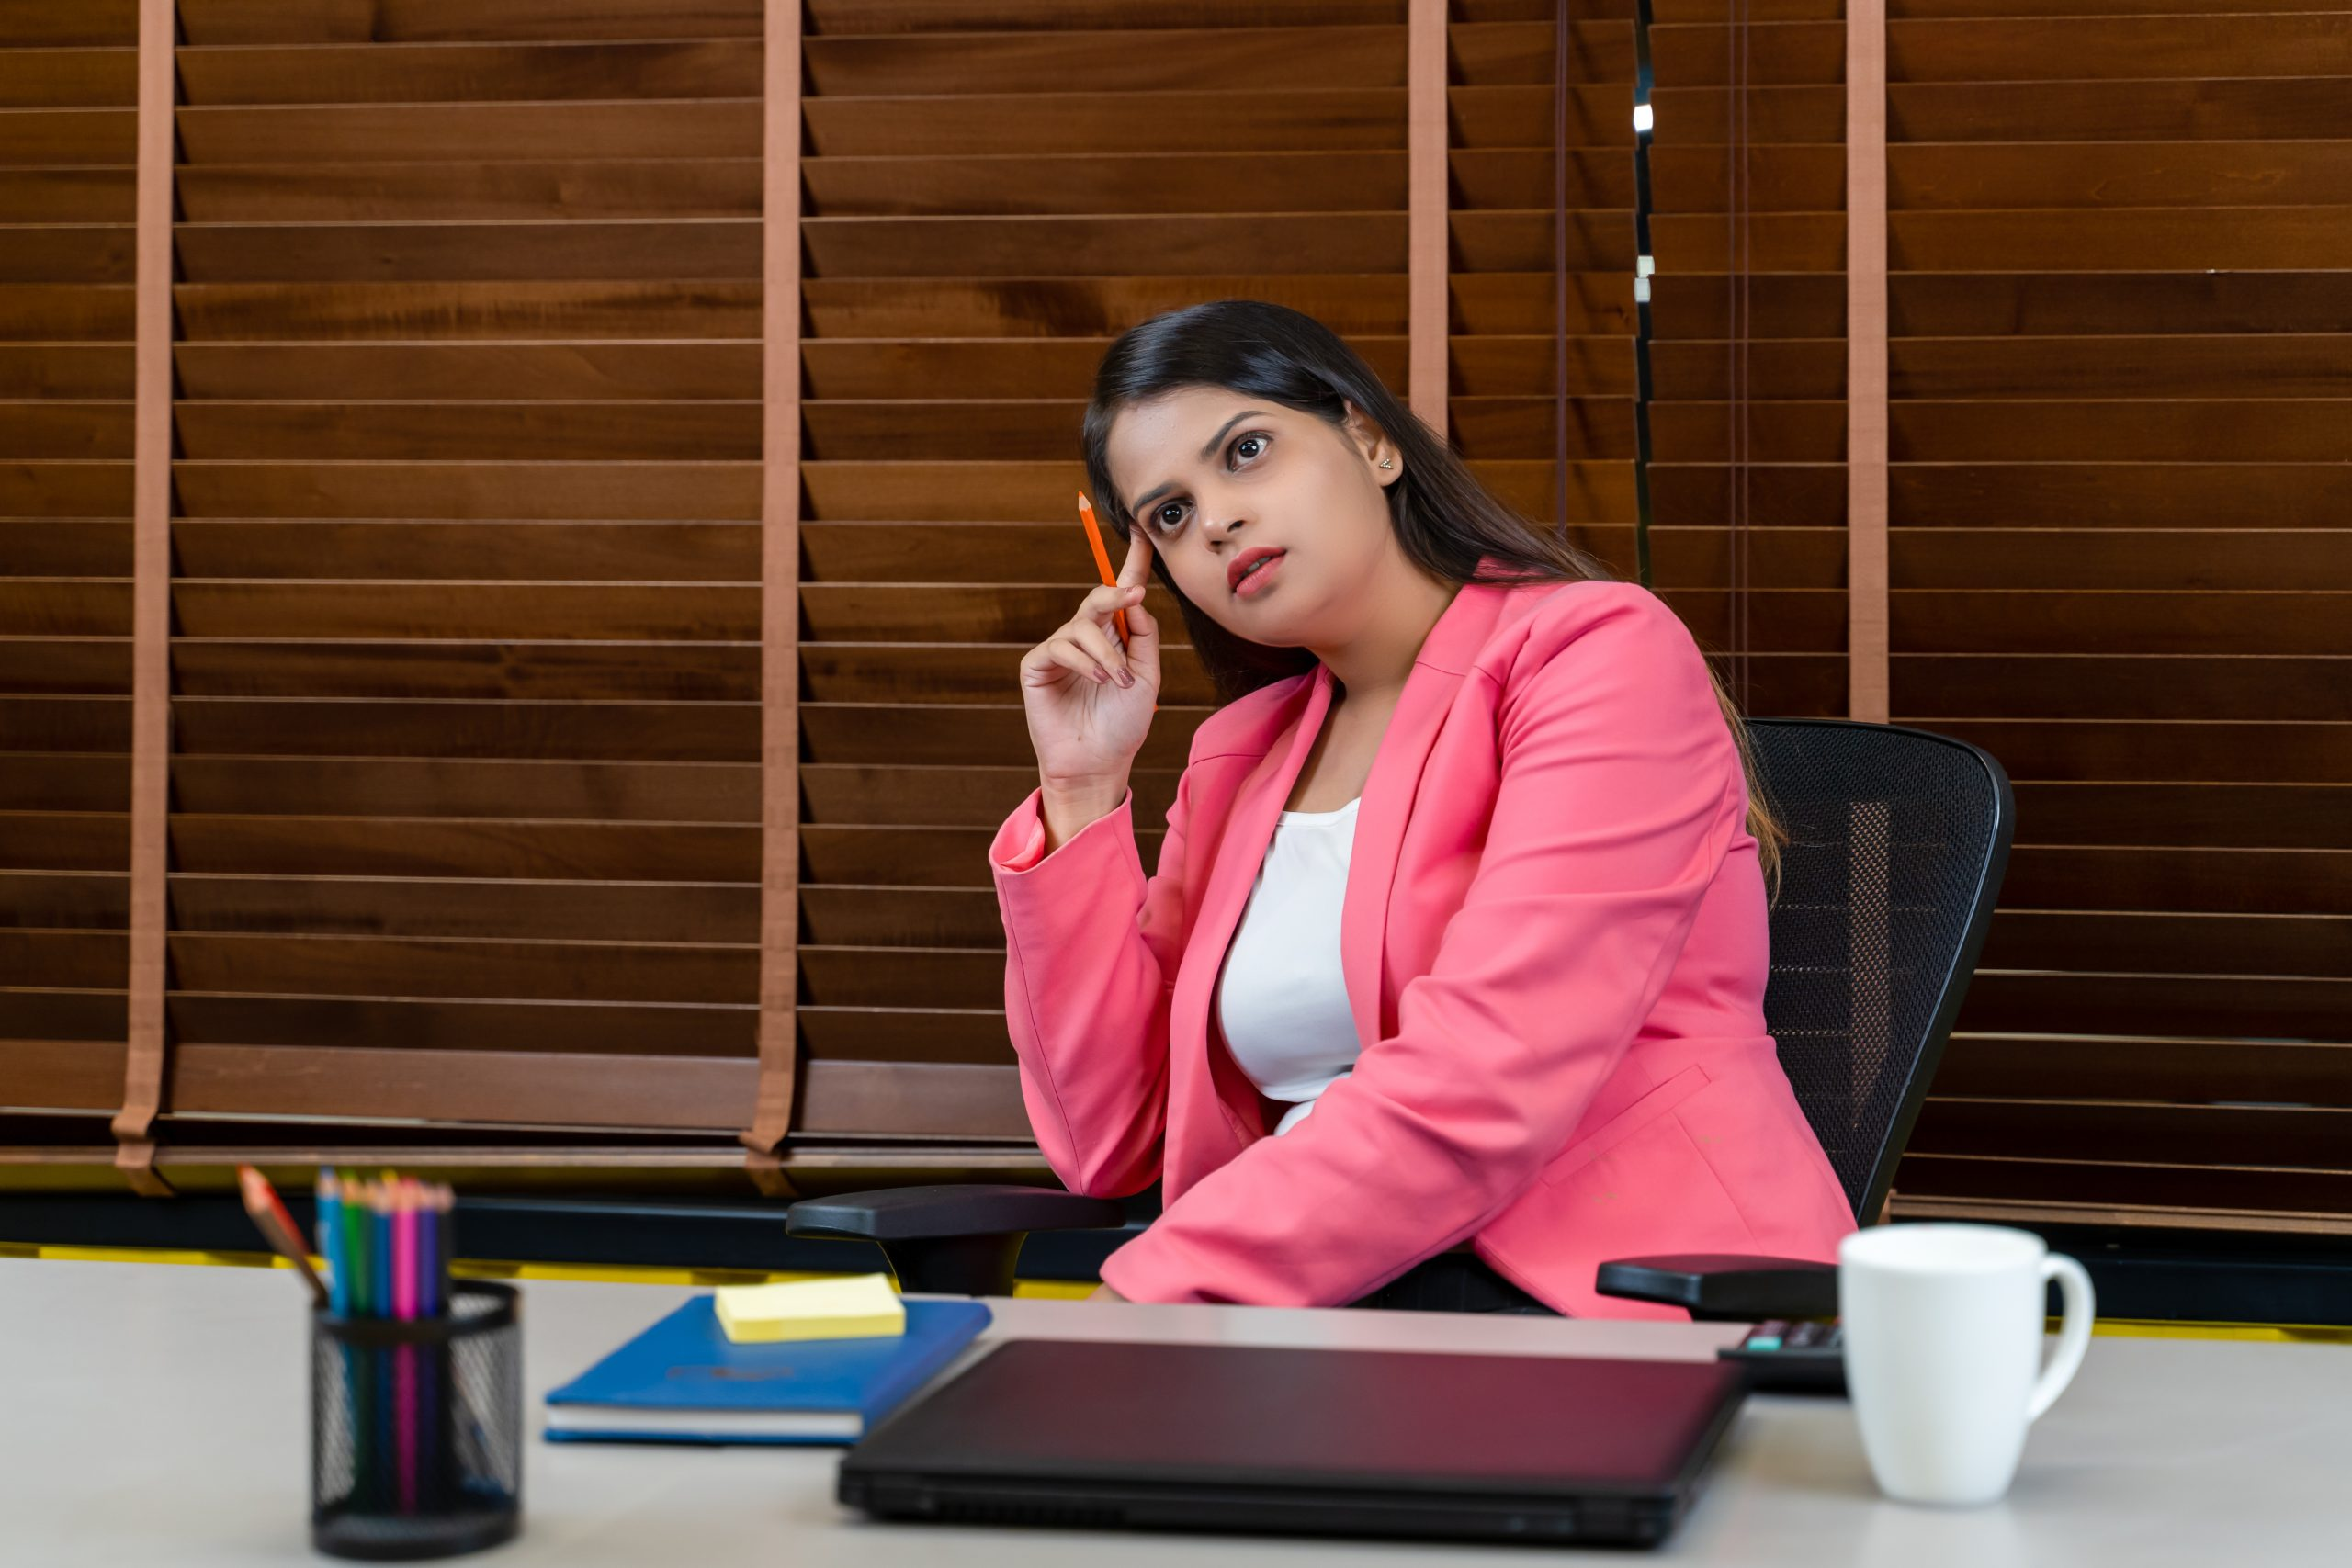 Stressed working woman